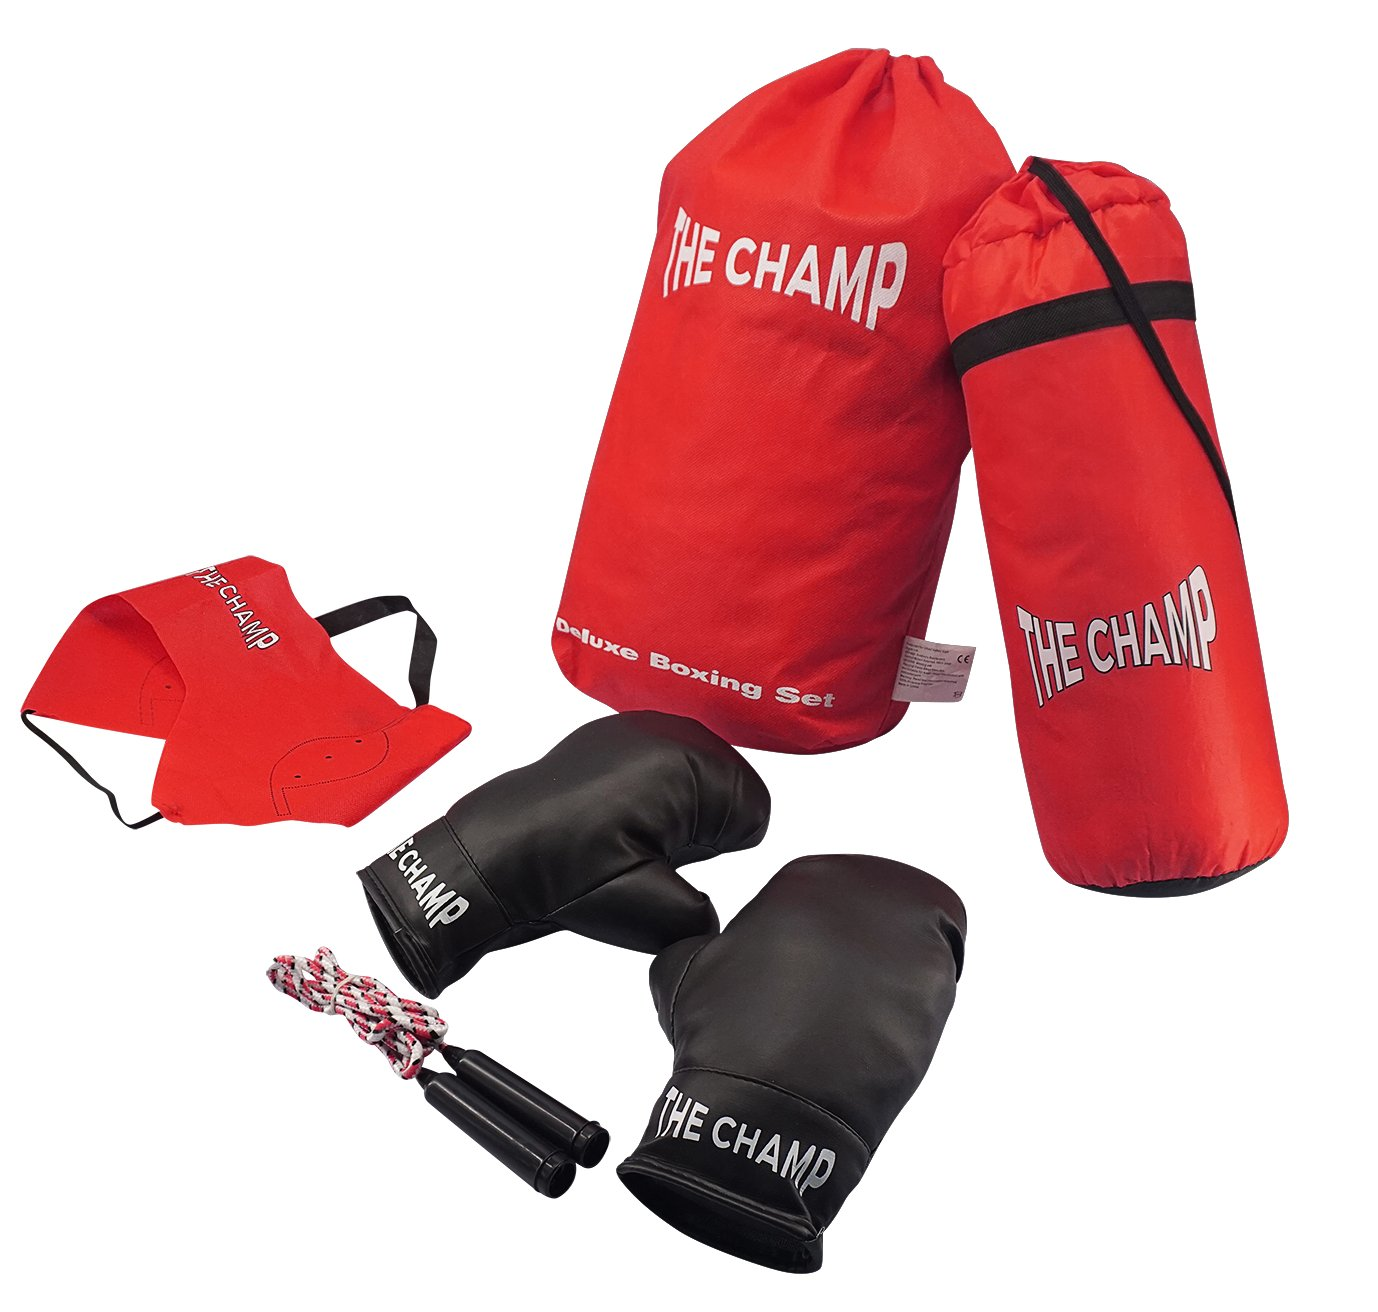 Fitness Gloves Argos: Chad Valley 5 Piece Boxing Set